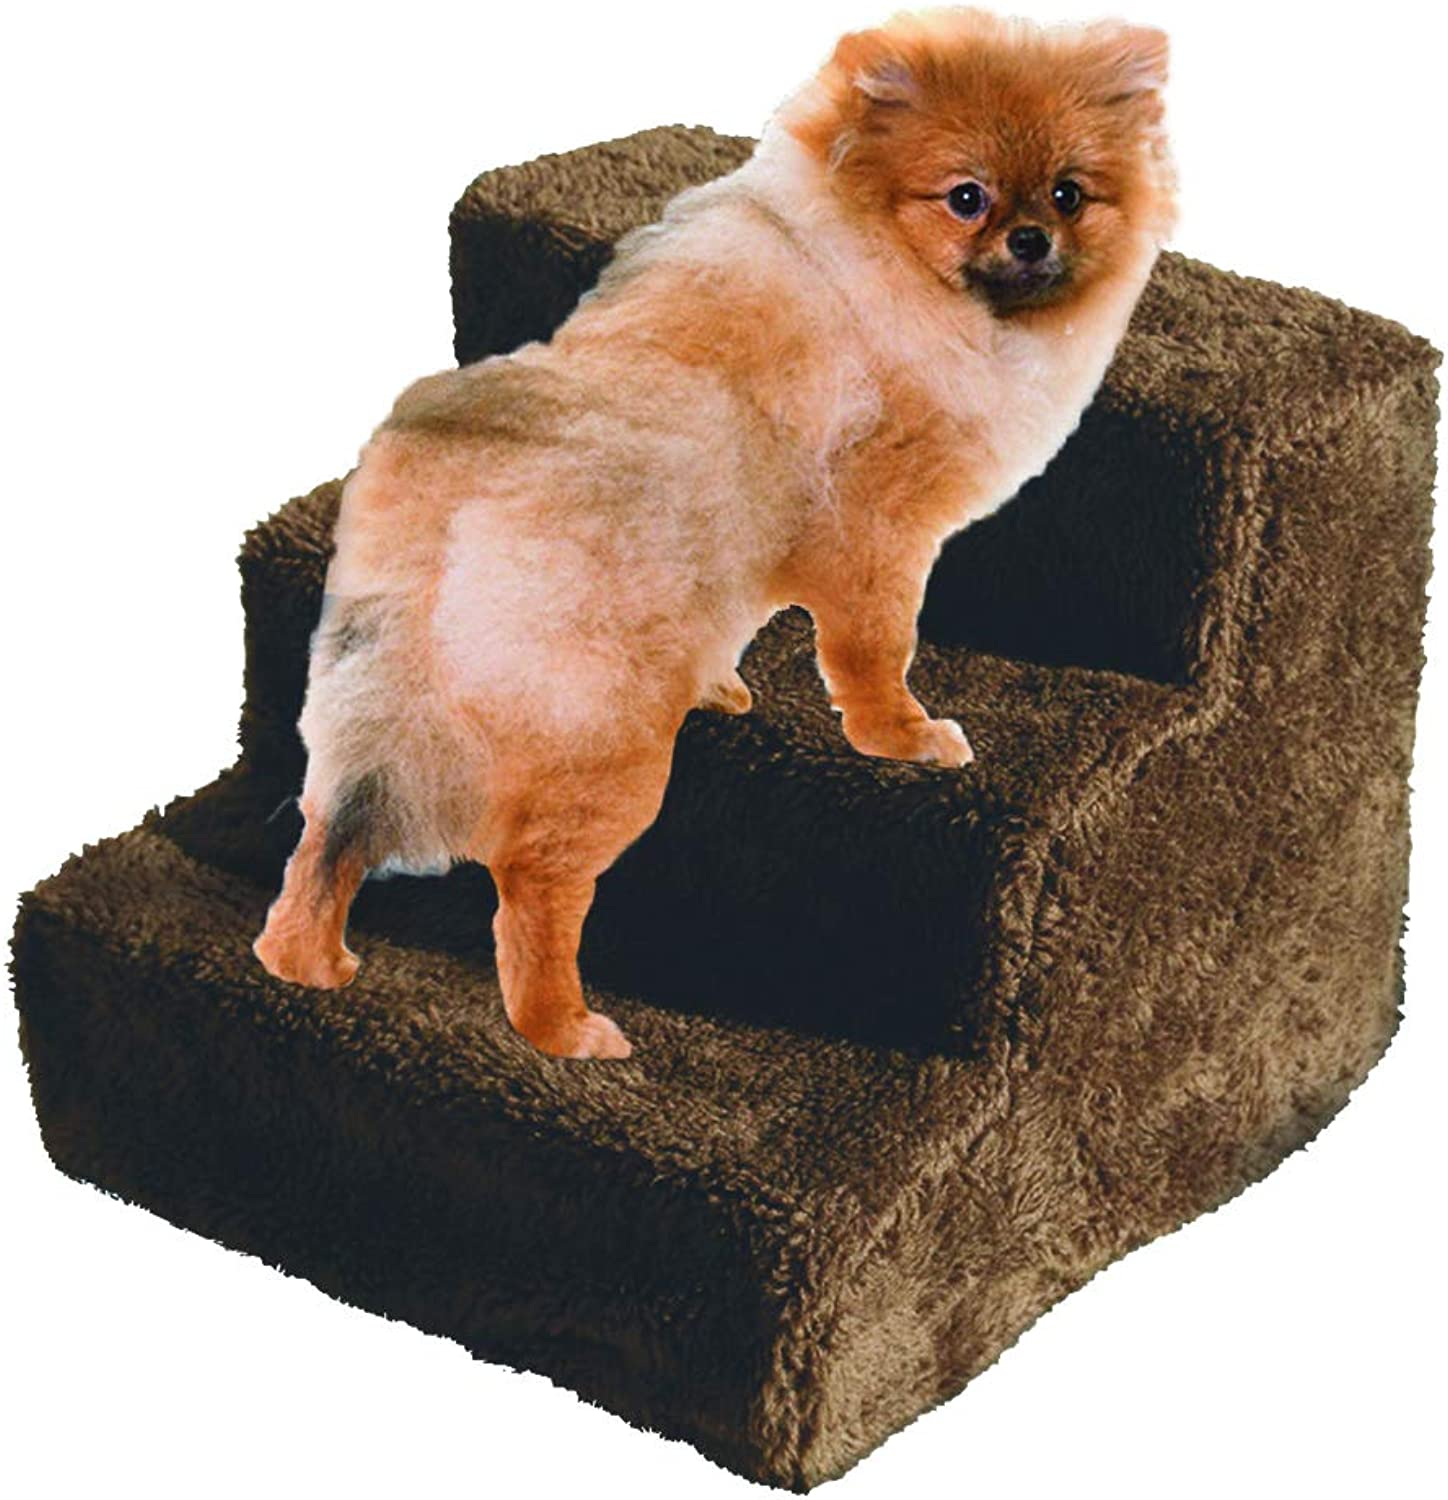 FRISKY FRIENDS Pet Stairs Dog Steps 3 Step Ladder Fleece Covered Staircase Indoor Ramp Kitten Cat Puppy